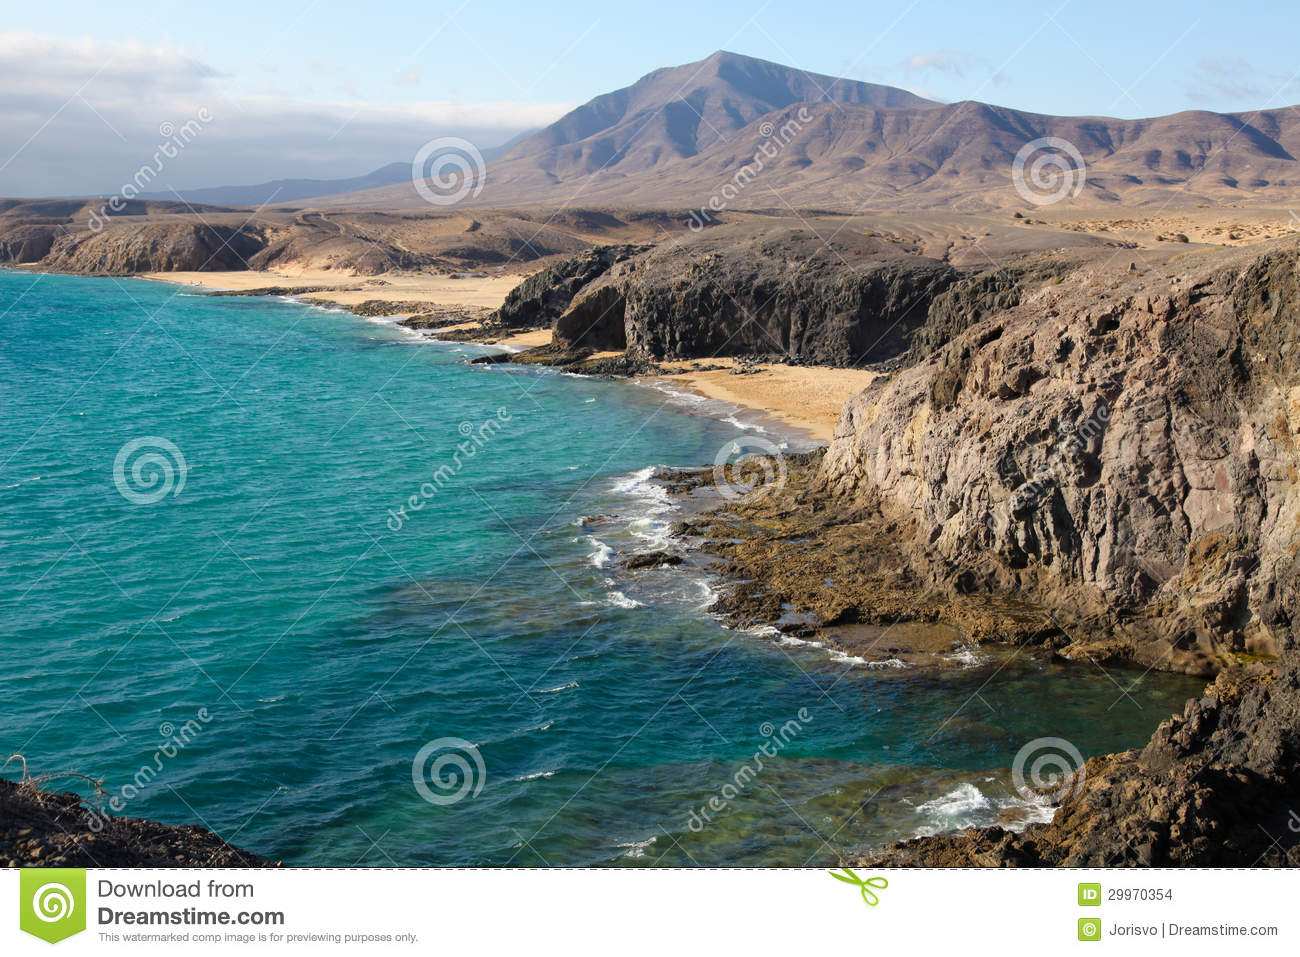 Lanzarote Spain  city images : Beach and bay, Lanzarote, Spain View of a beautiful bay and beach at ...